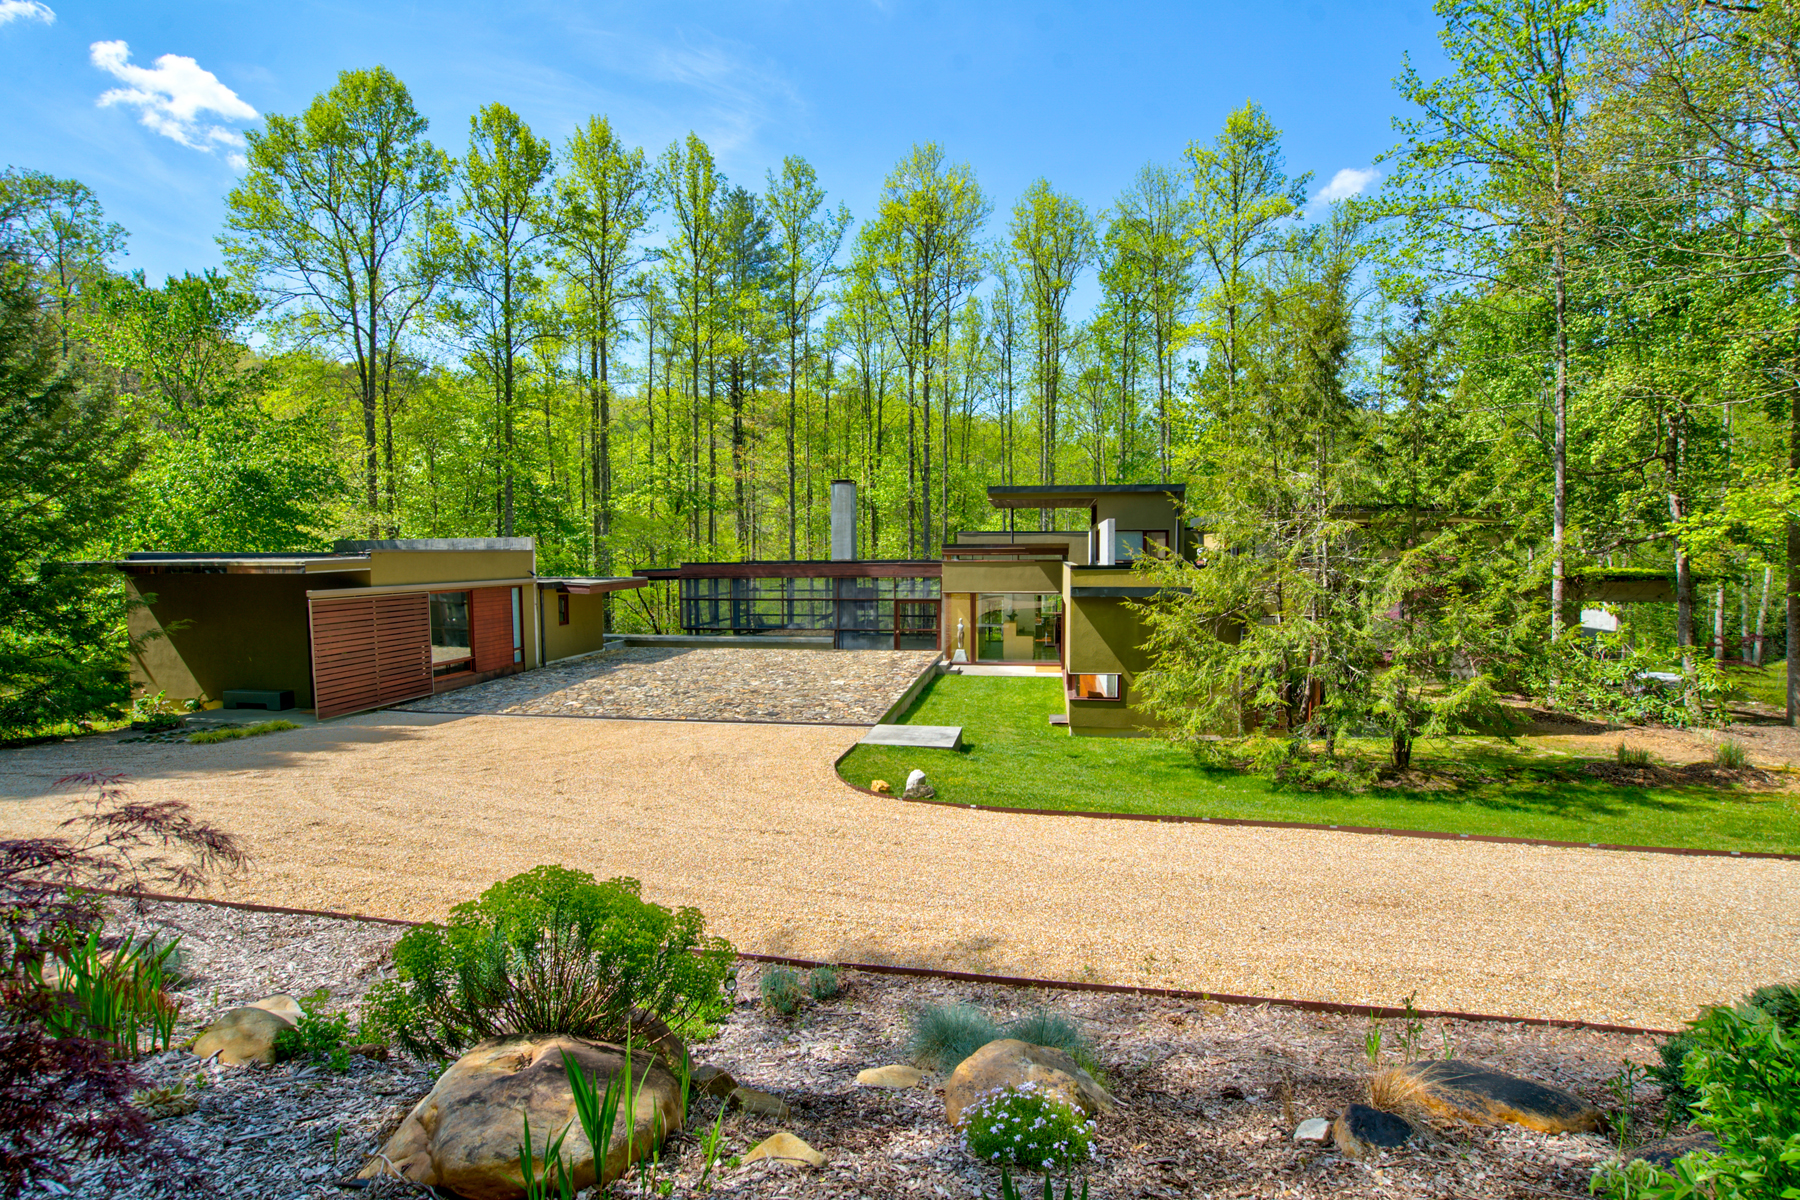 獨棟家庭住宅 為 出售 在 Modern Masterpiece Mountain Retreat 10 Barkers Creek Ln Rabun Gap, 喬治亞州 30568 美國